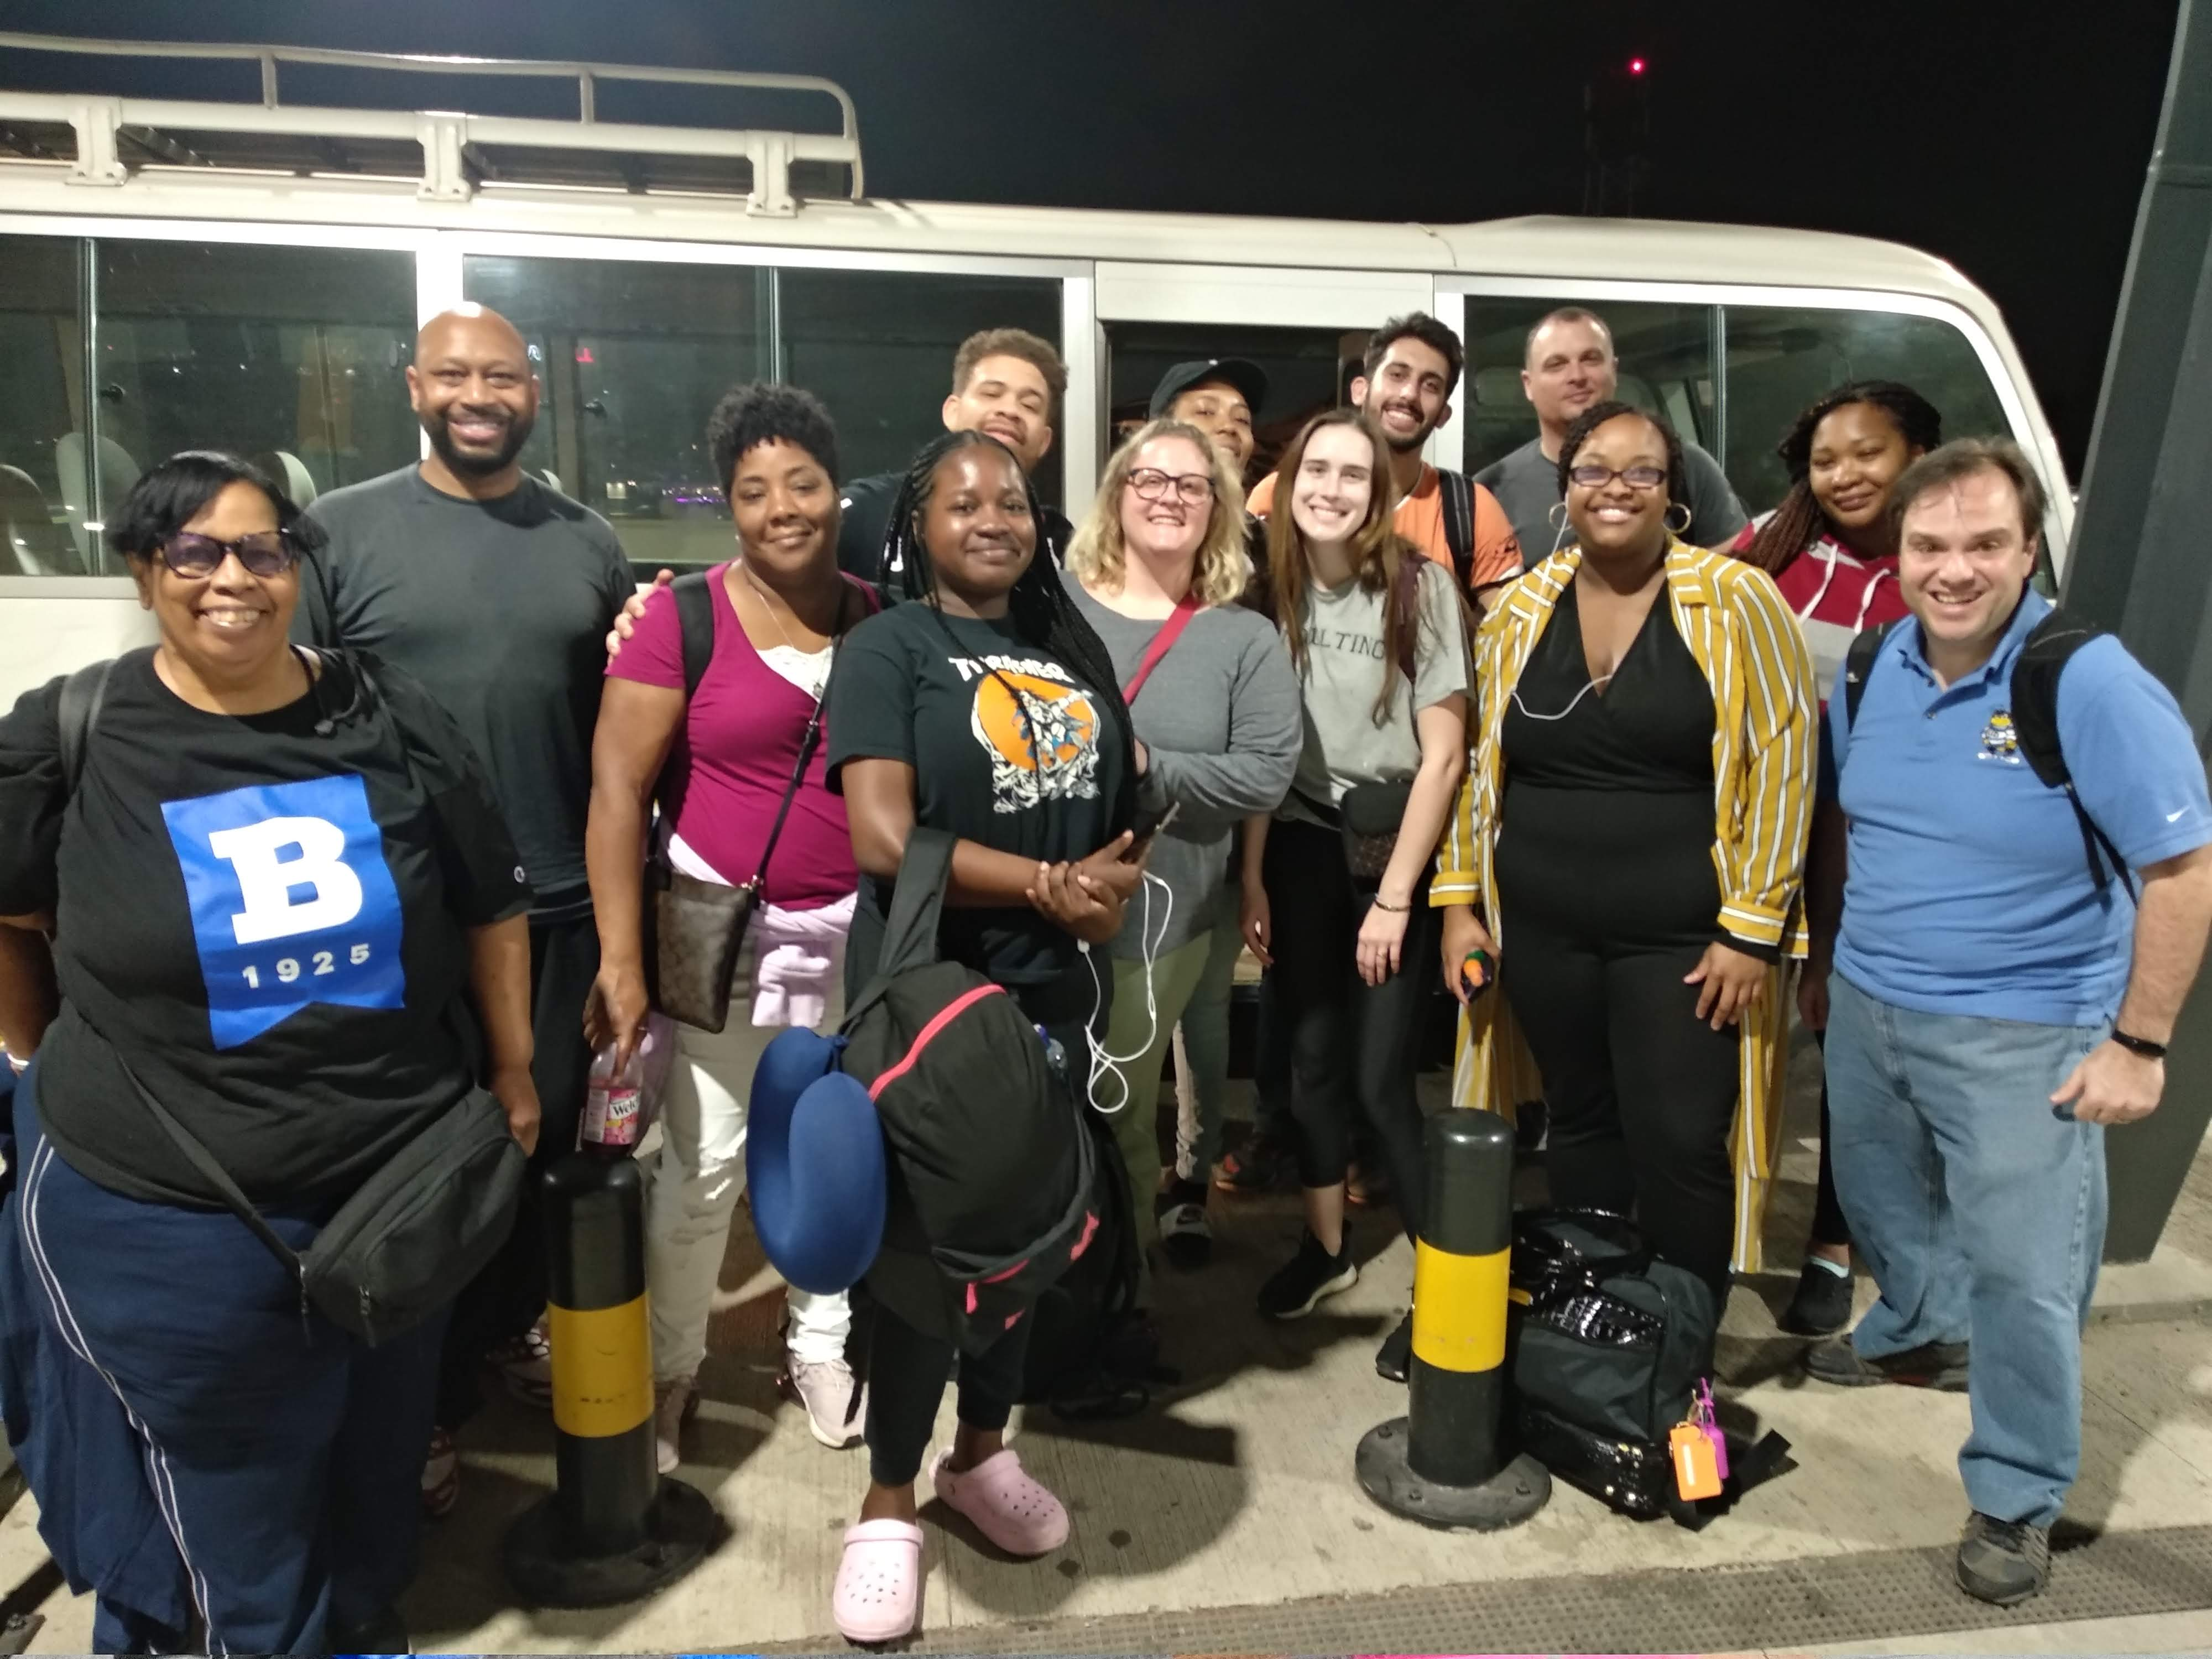 Ub students getting ready to board bus in Accra, Ghana